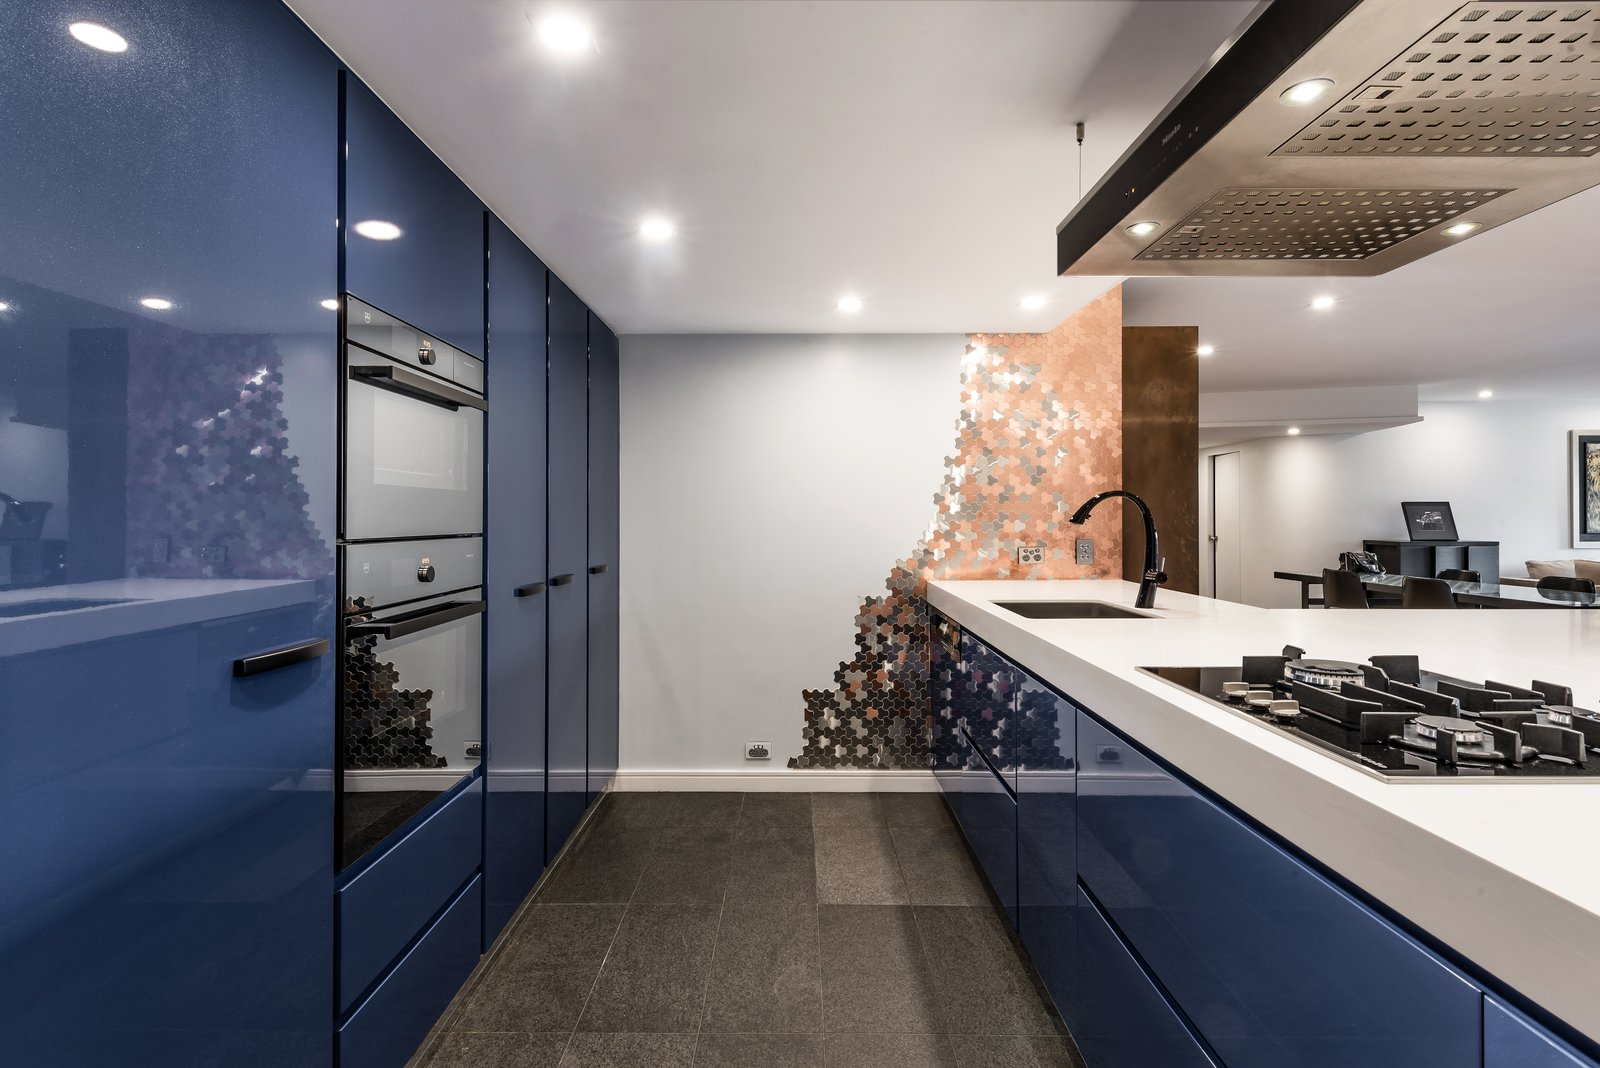 """Kitchen, Colorful Cabinet, Cooktops, Undermount Sink, Wall Oven, and Recessed Lighting This """"Blue kitchen"""" was designed by Marianne Gailer.    Photo 4 of 11 in 10 Design Tips for Kitchens, According to Expert Renovators"""